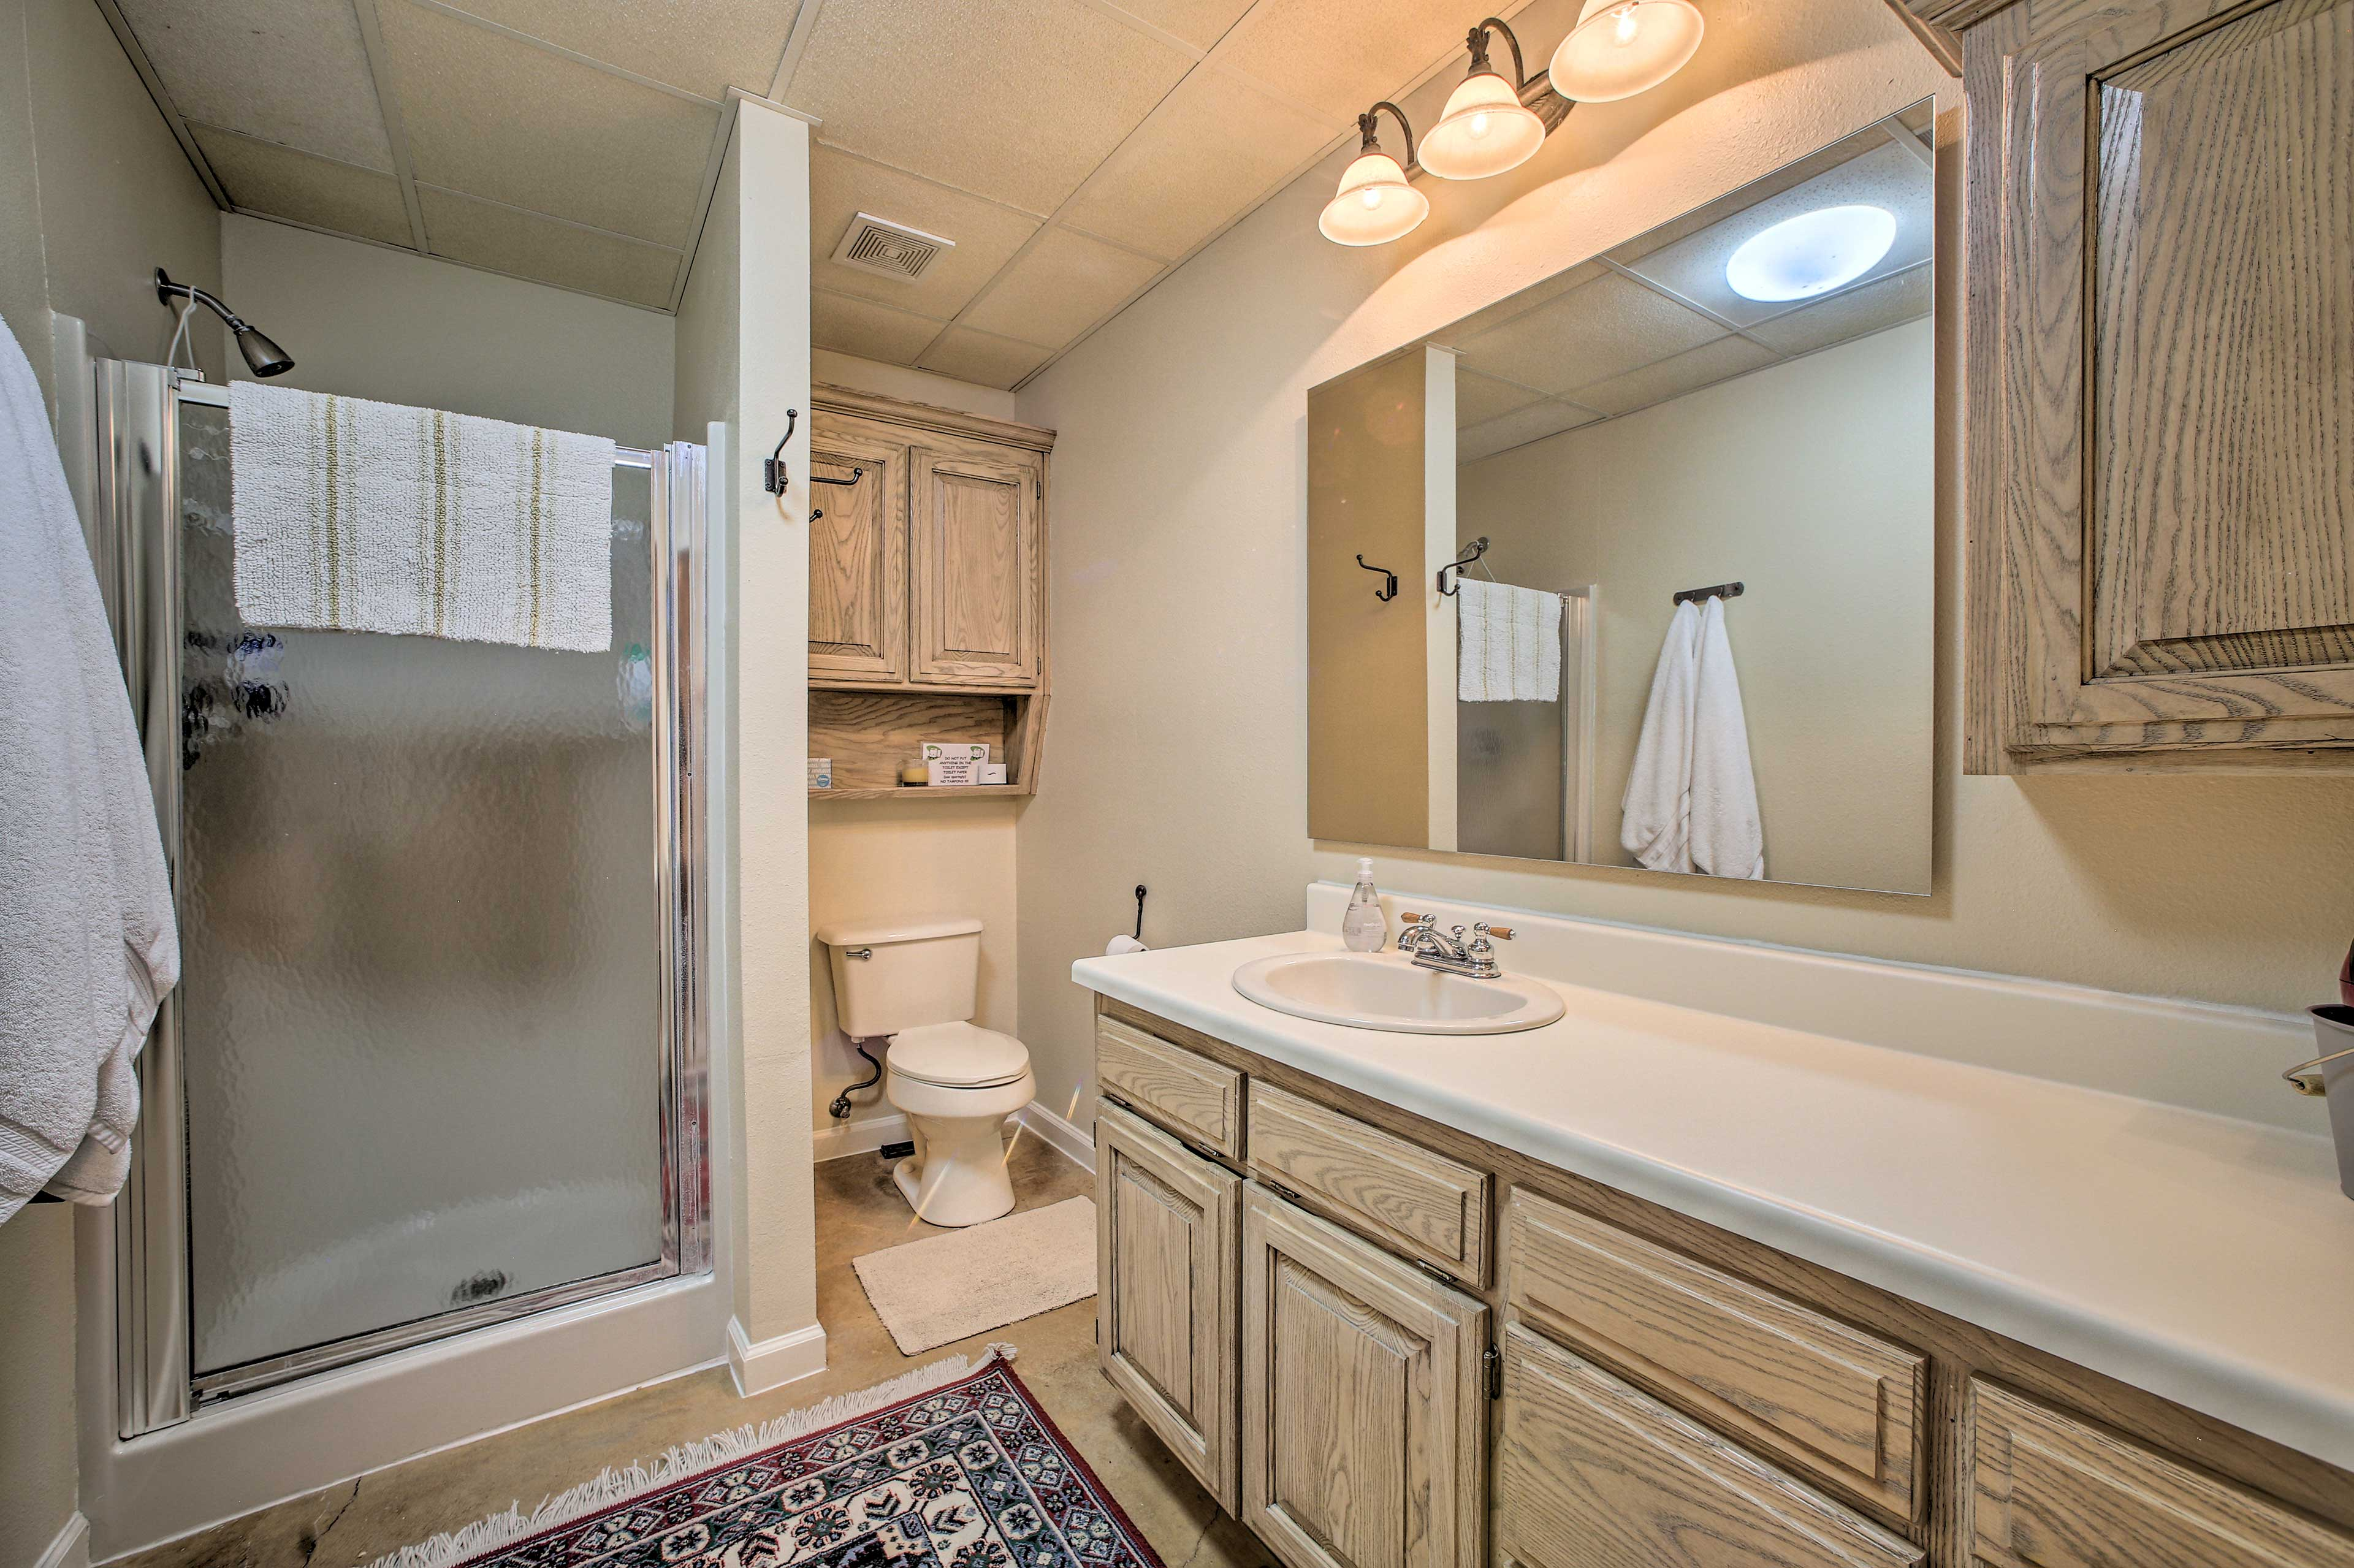 The en-suite master bathroom has a shower and plenty of counterspace.